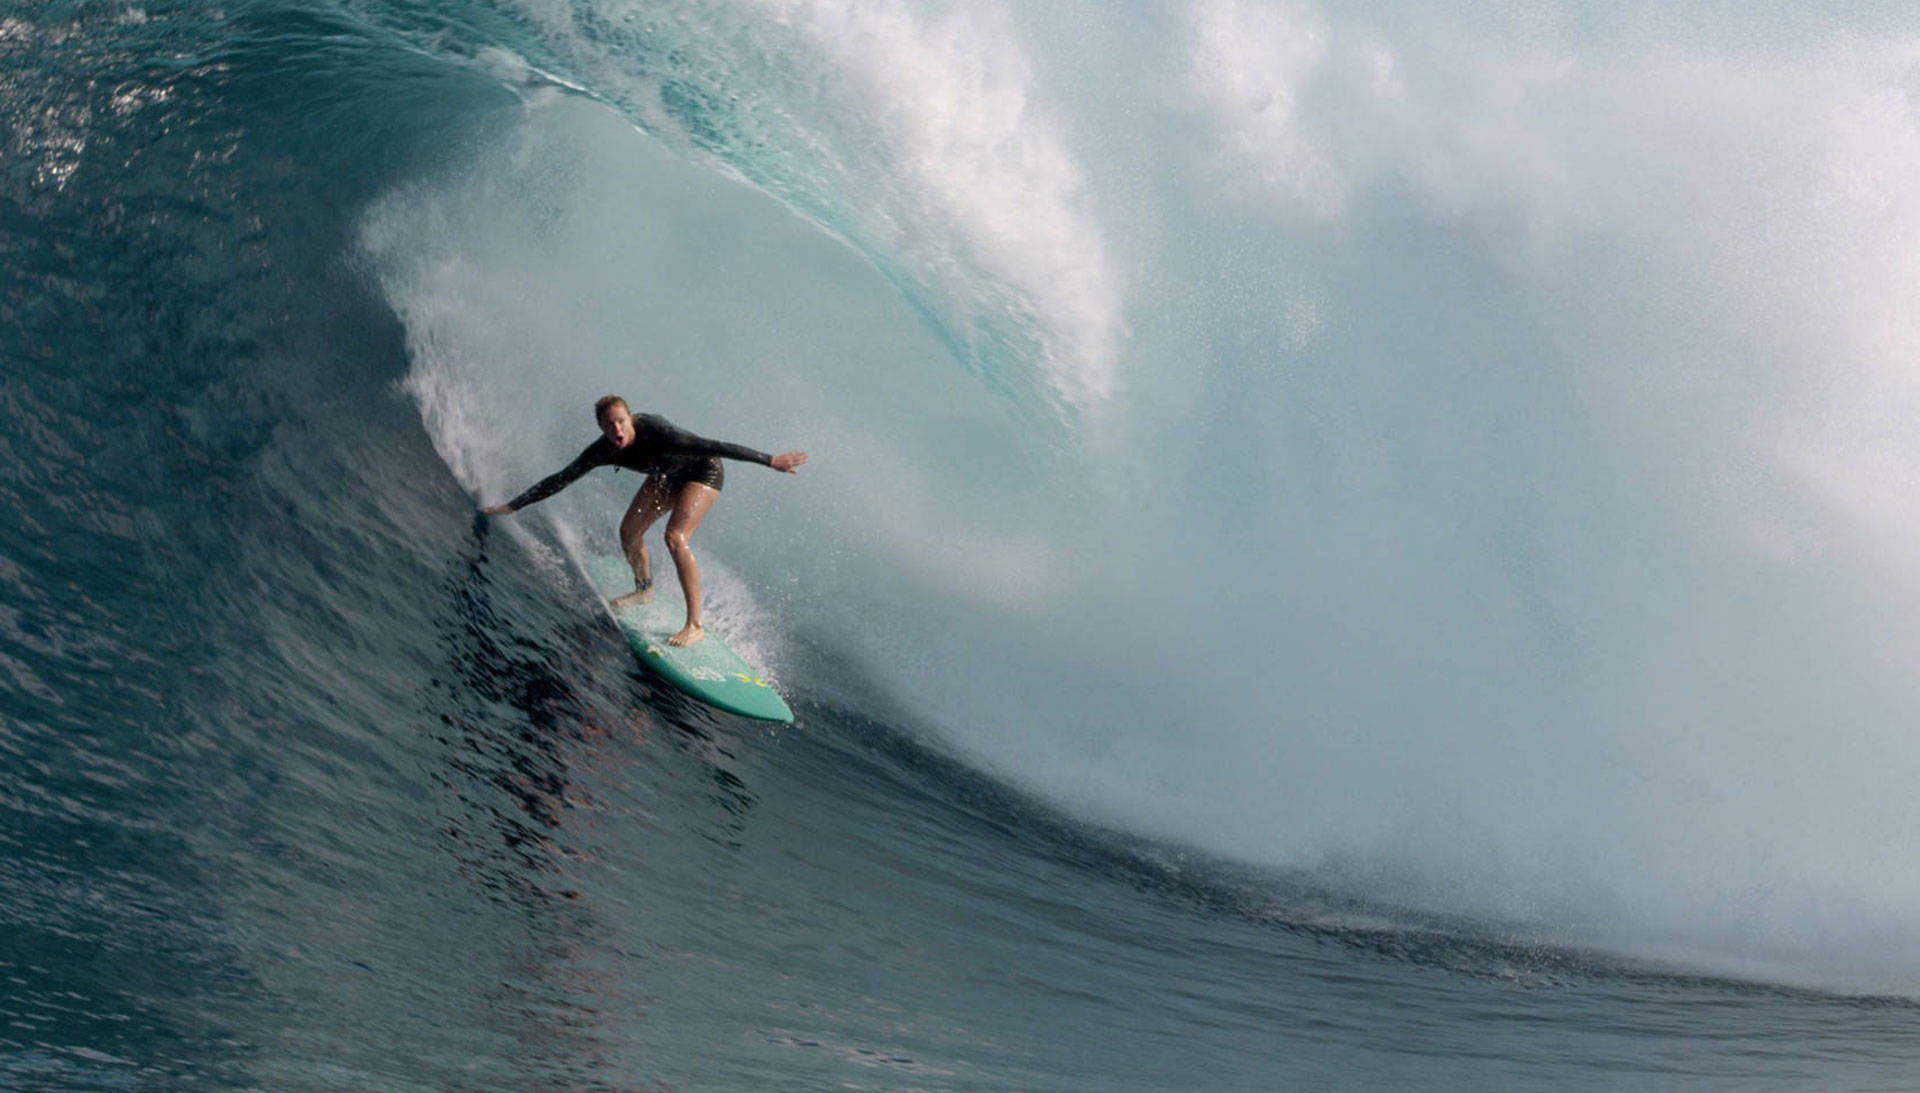 Paige Alms gets barreled at the Jaws surf break in Maui, Hawaii, a clip featured in the documentary 'The Wave I Ride.'  Courtesy of 'The Wave I Ride'